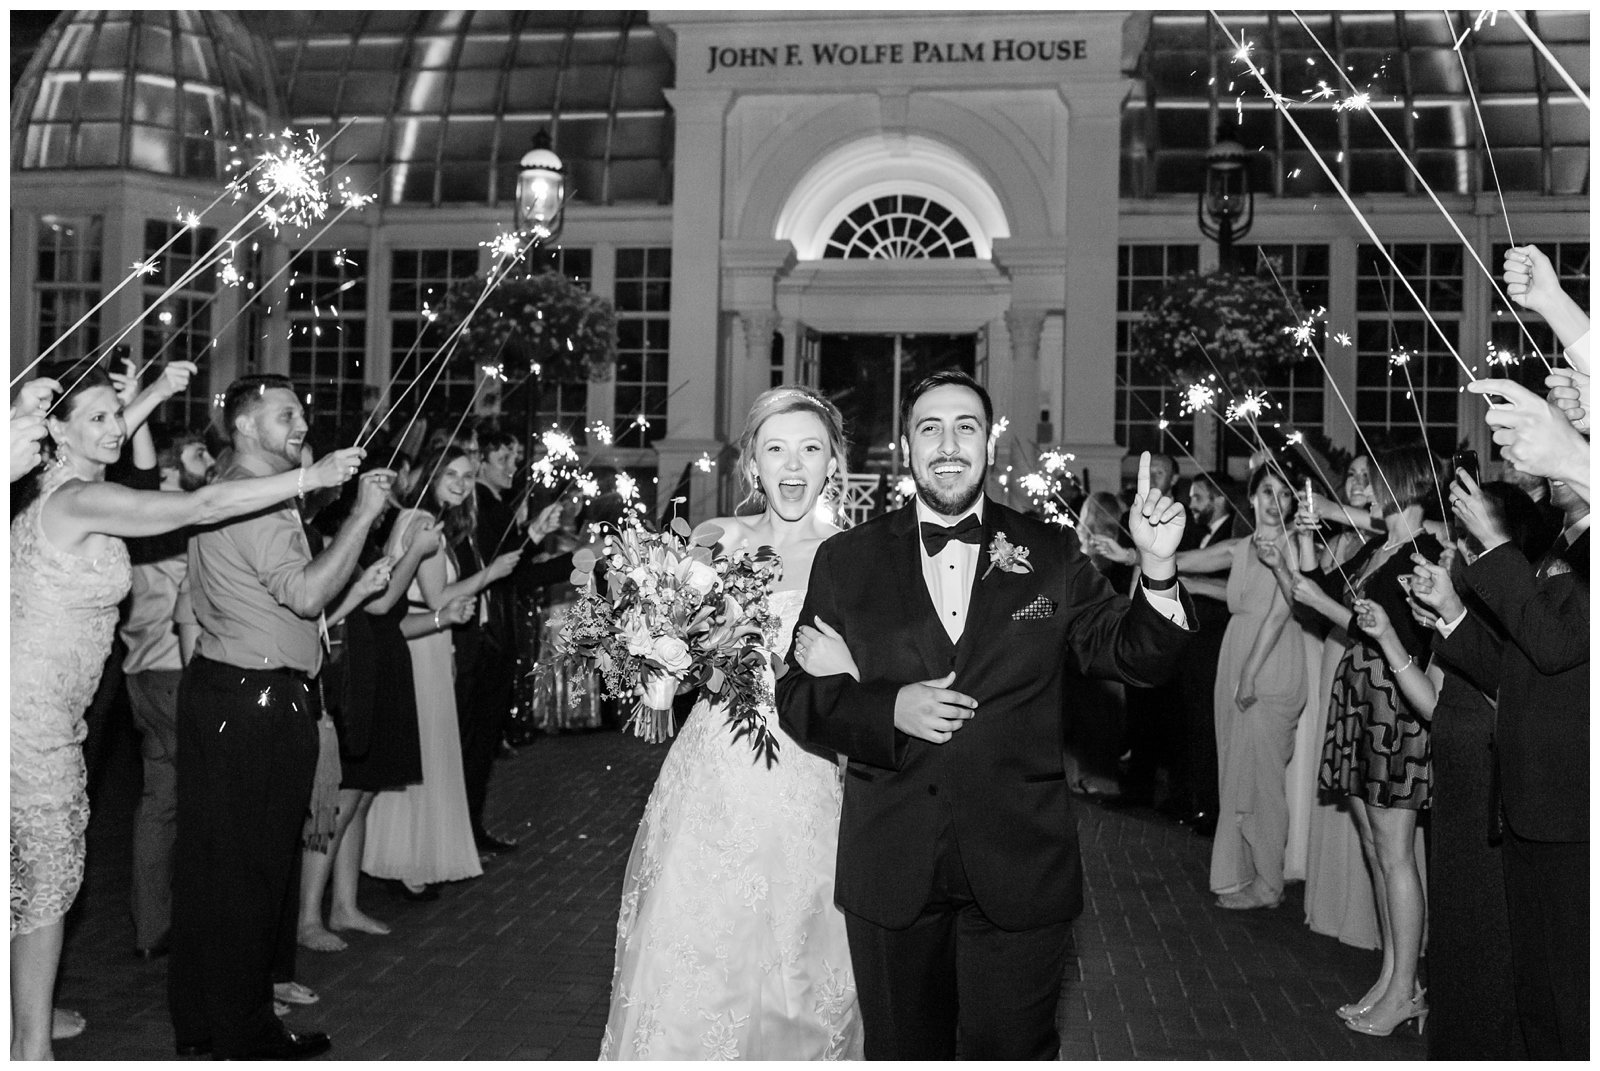 Franklin Park Conservatory Wedding The Palm House Bridal Garden Grove_0061